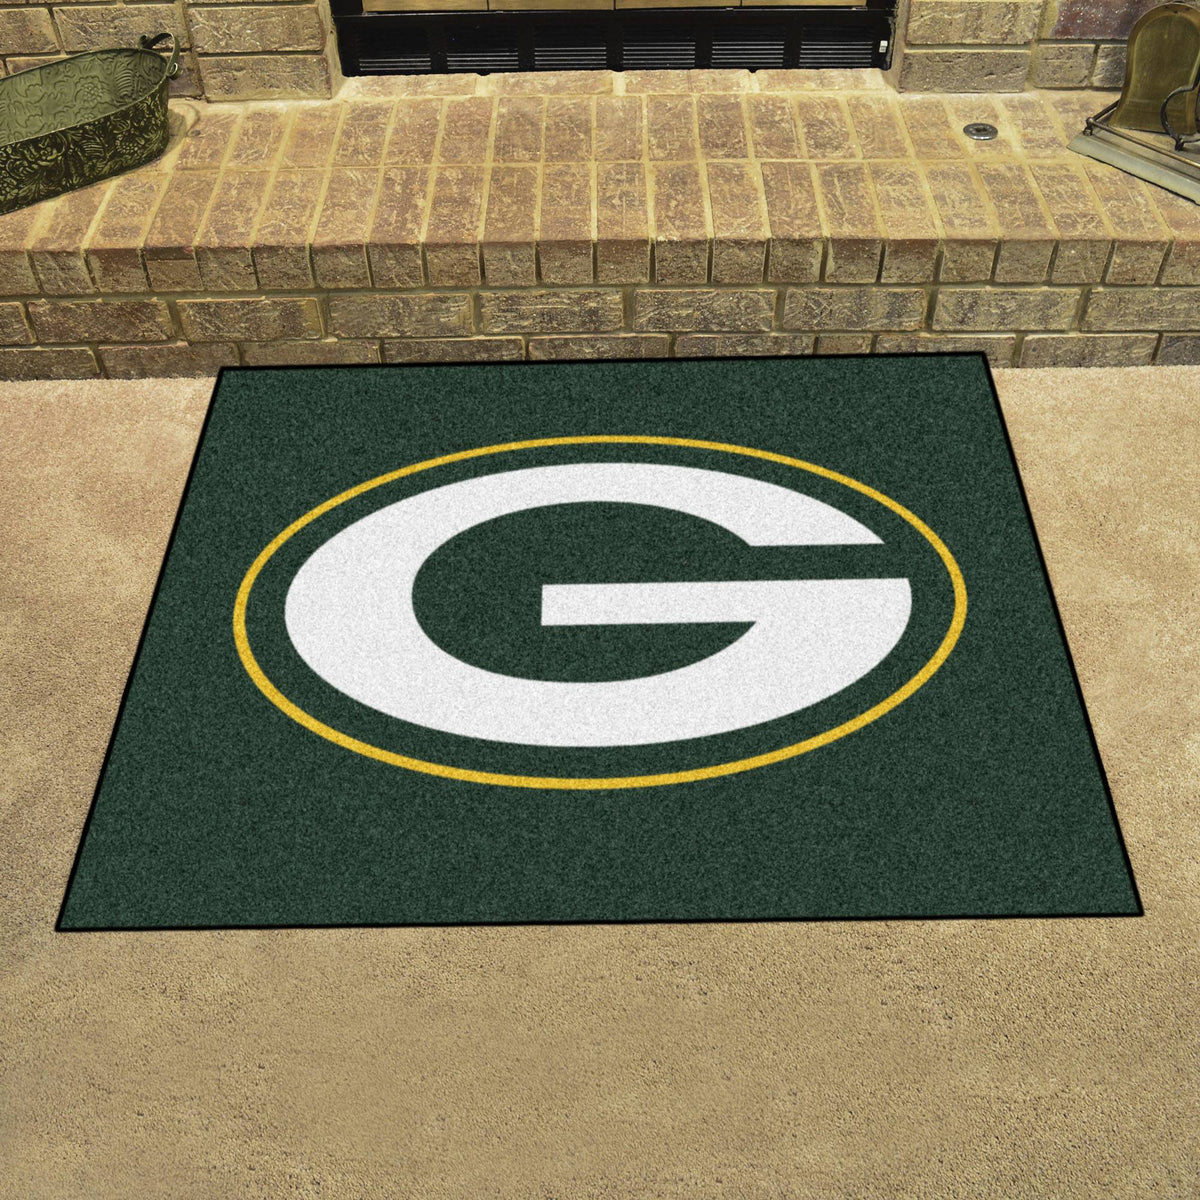 "NFL - Ulti-Mat, 59.5"" x 94.5"" NFL Mats, Rectangular Mats, Ulti-Mat, NFL, Home Fan Mats Green Bay Packers 2"